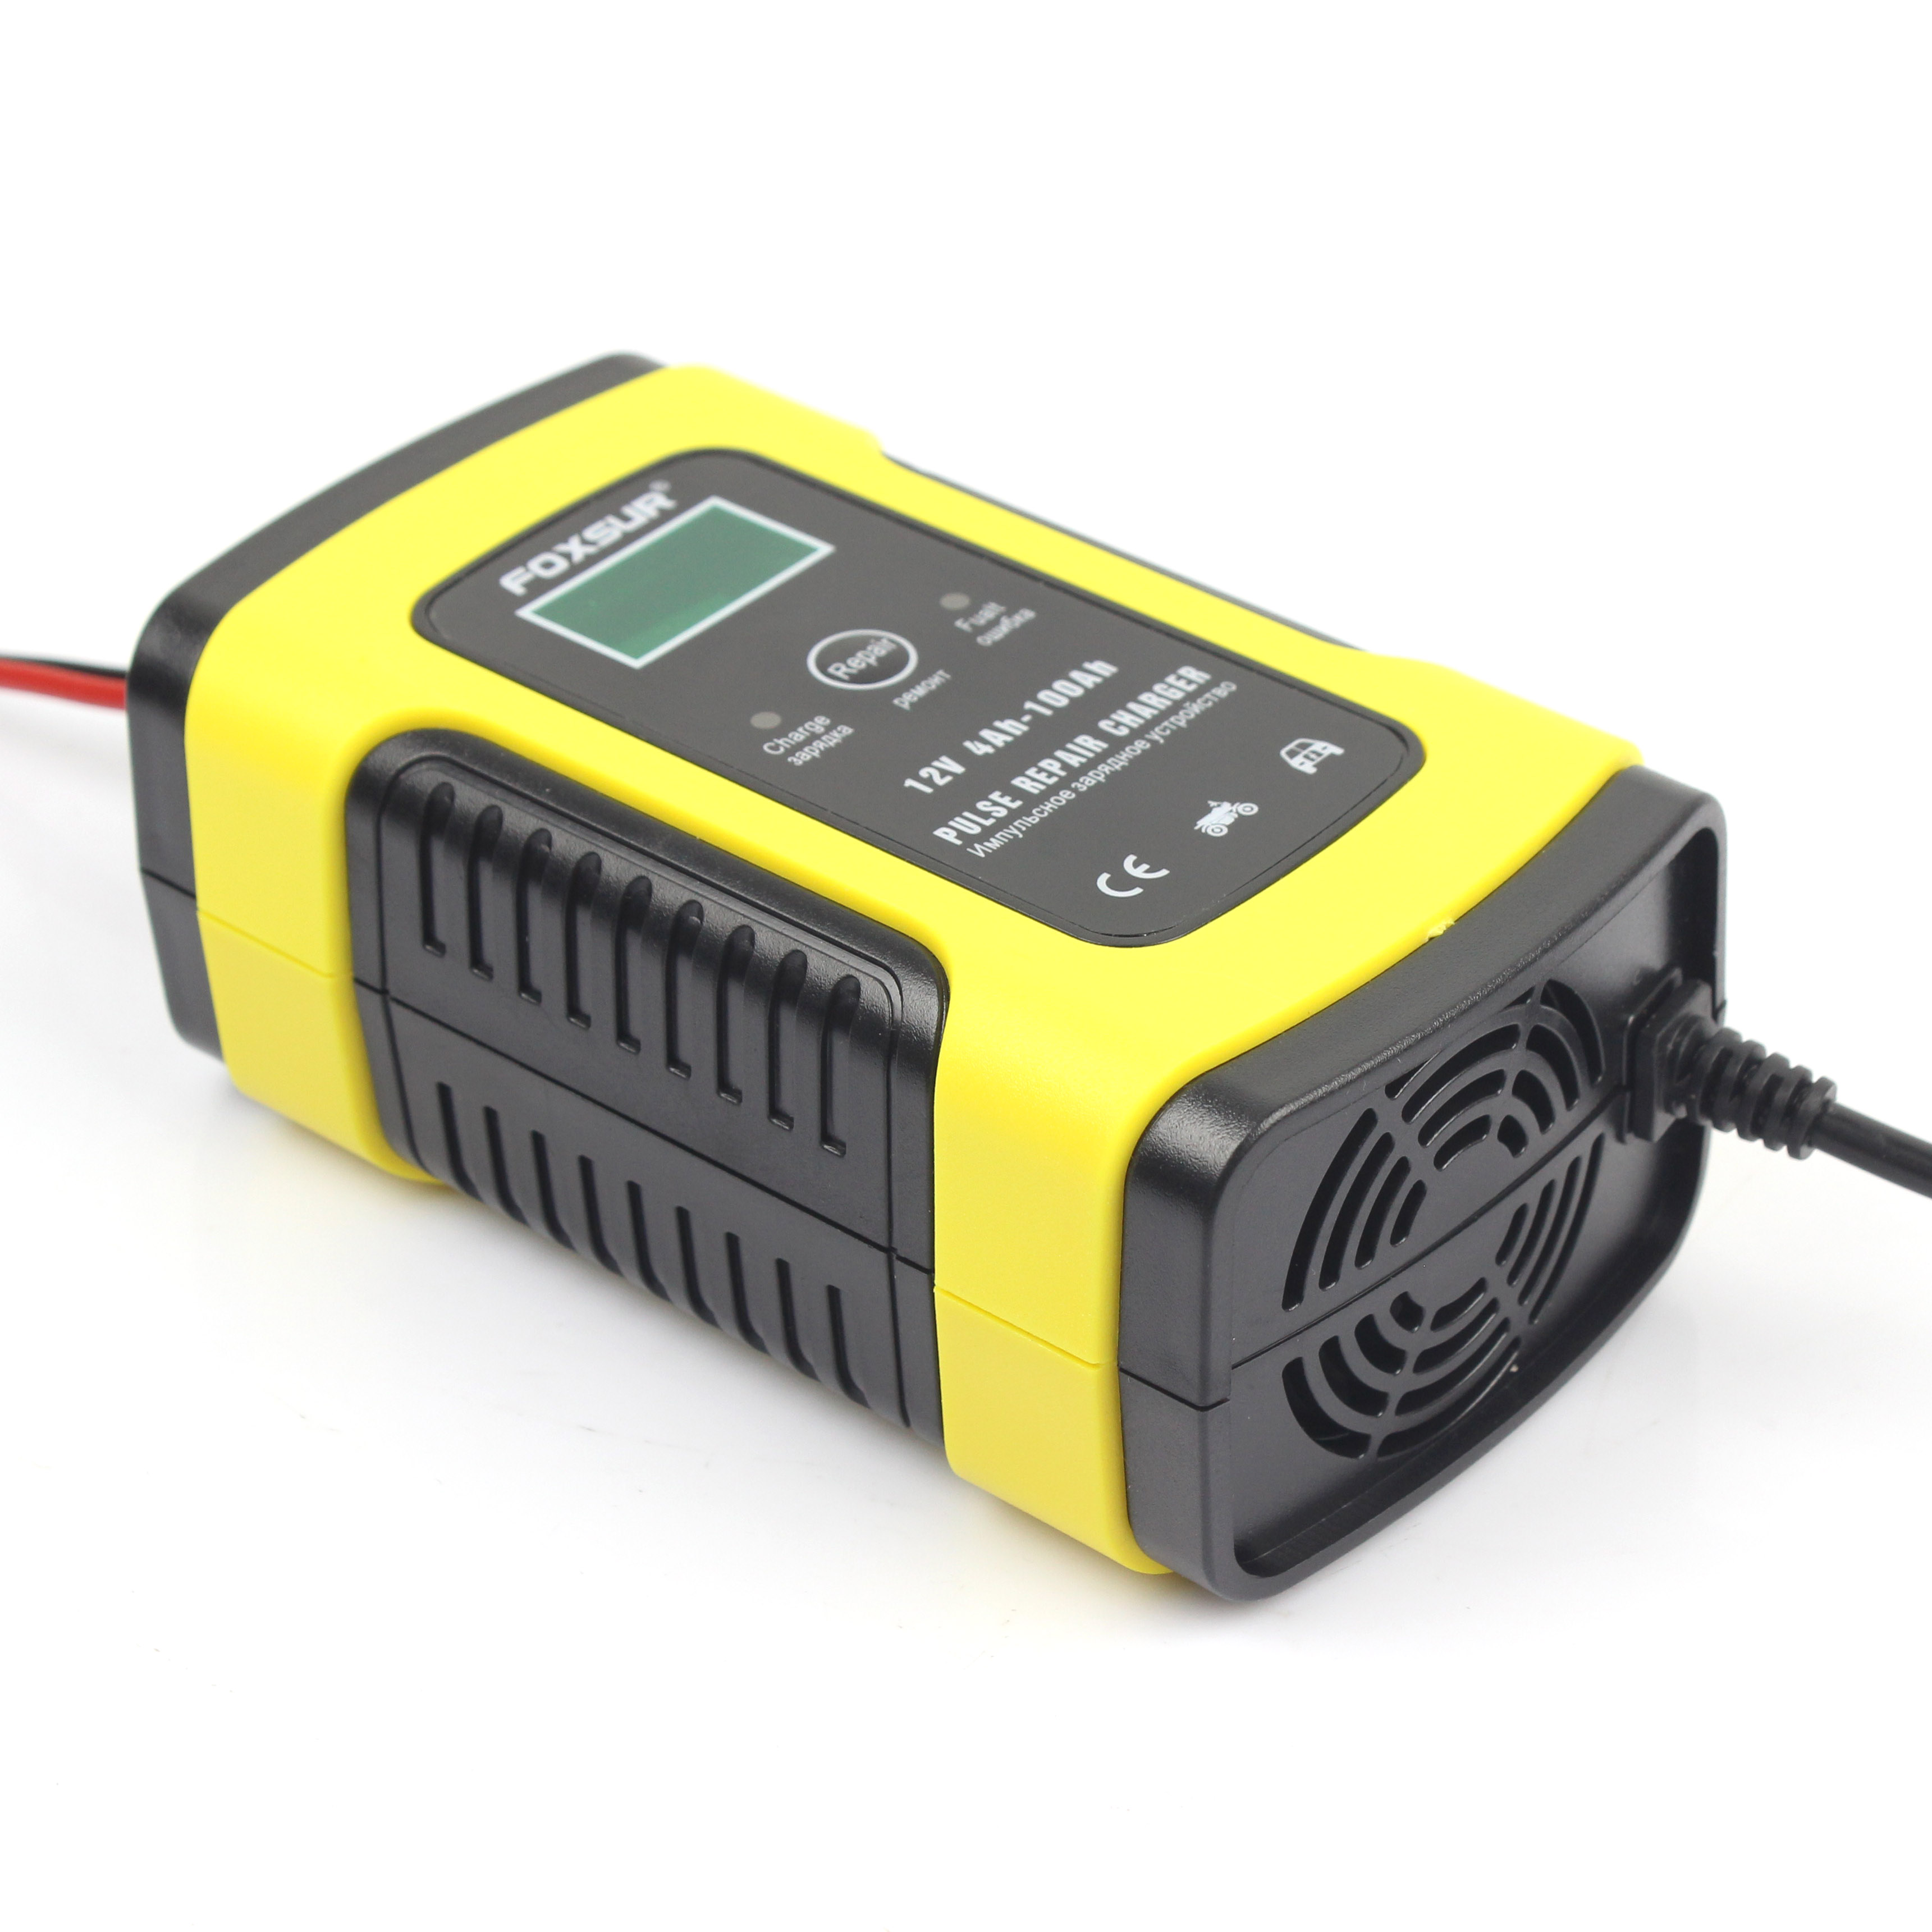 12v 5a Battery  Charger Pulse Repair Charger With Lcd Display For Motorcycle Car Battery